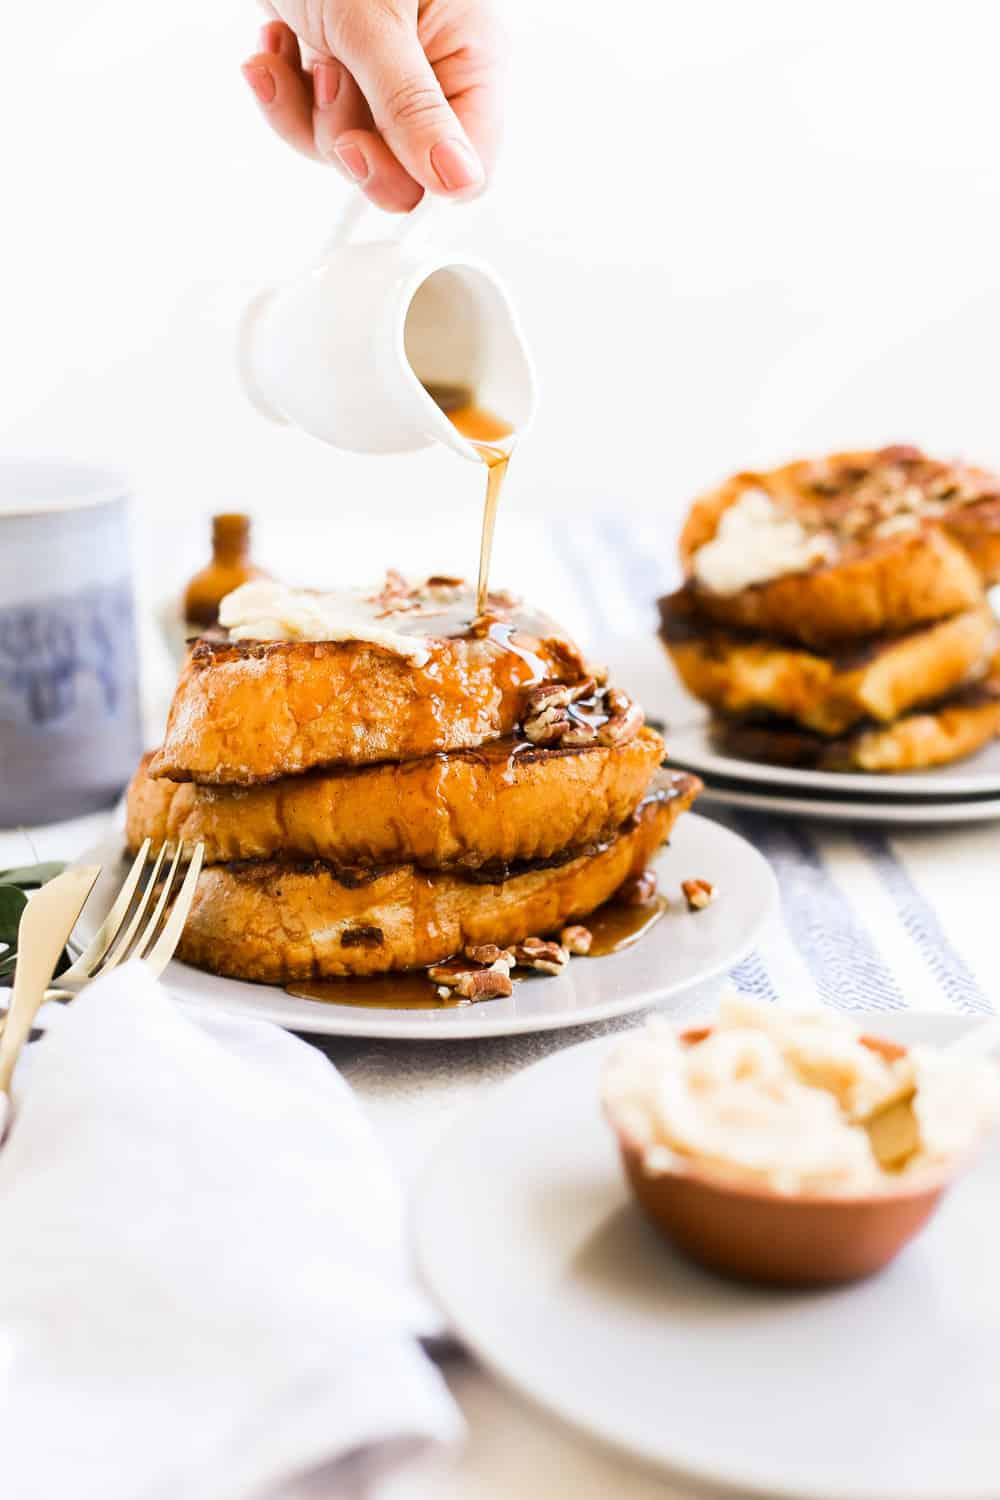 A stack of Pumpkin Spice French Toast on a plate with syrup being poured.